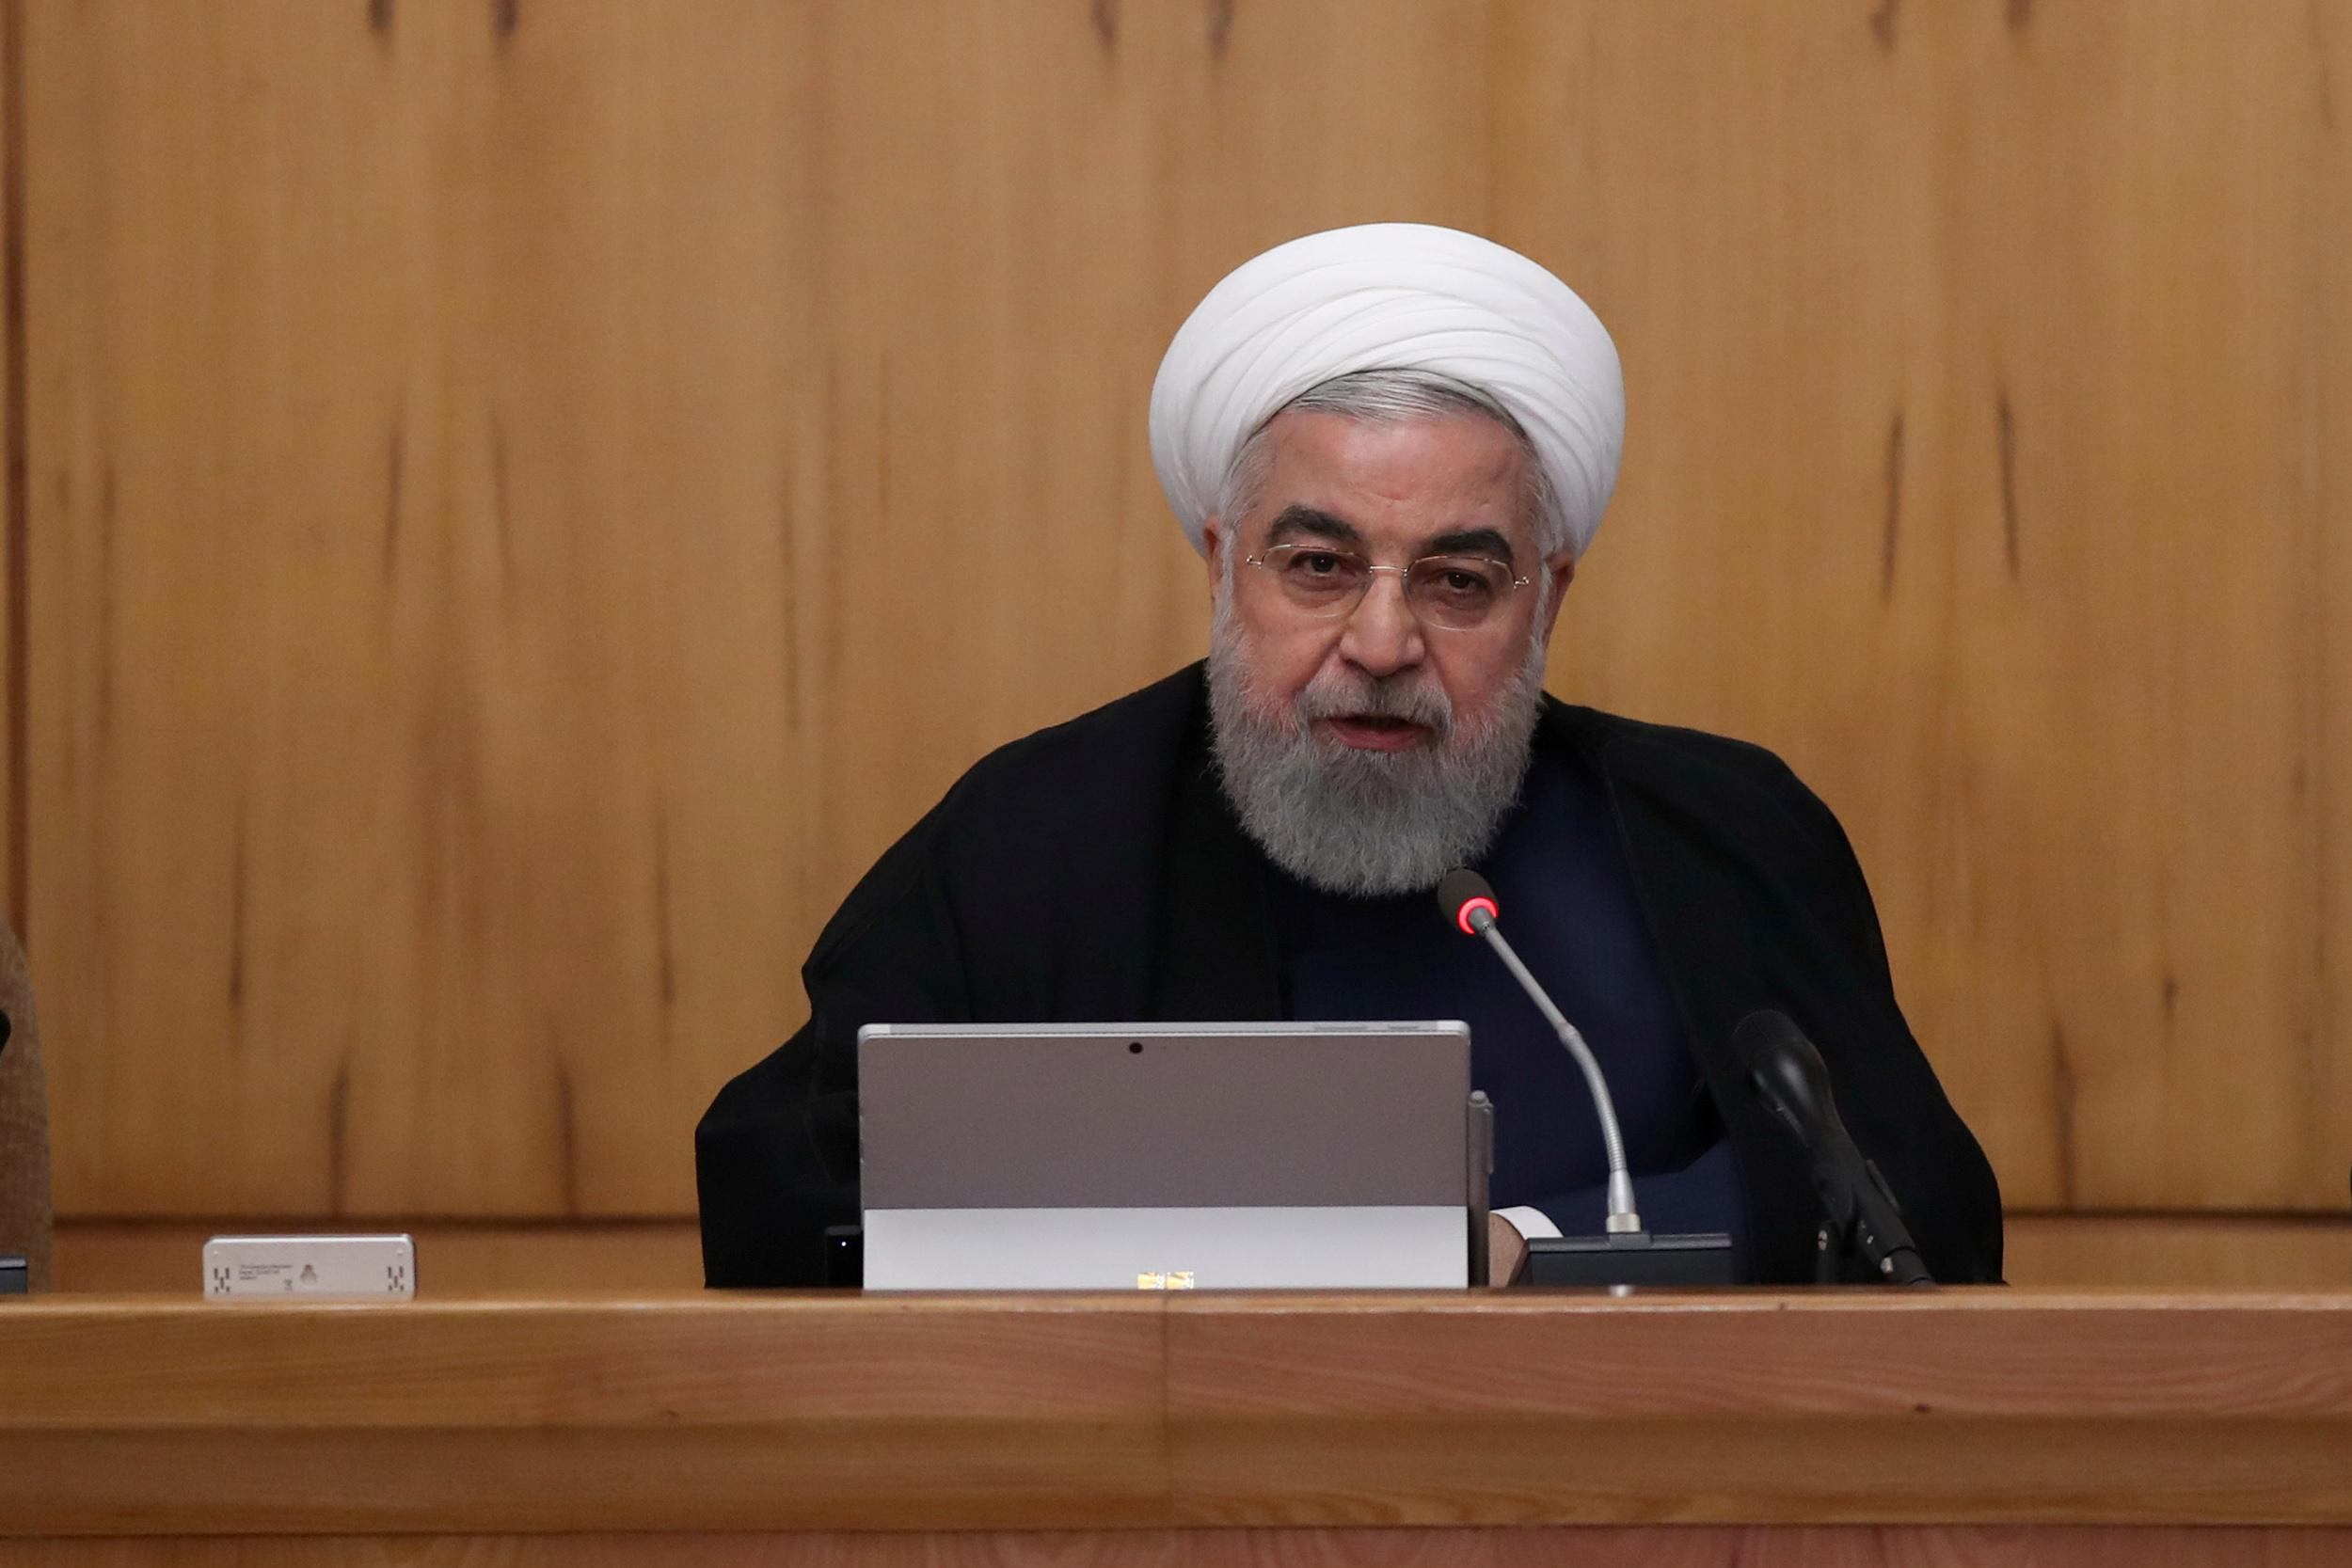 As chance of Trump, Rouhani meeting at U.N. fades, talk turns to Security Council